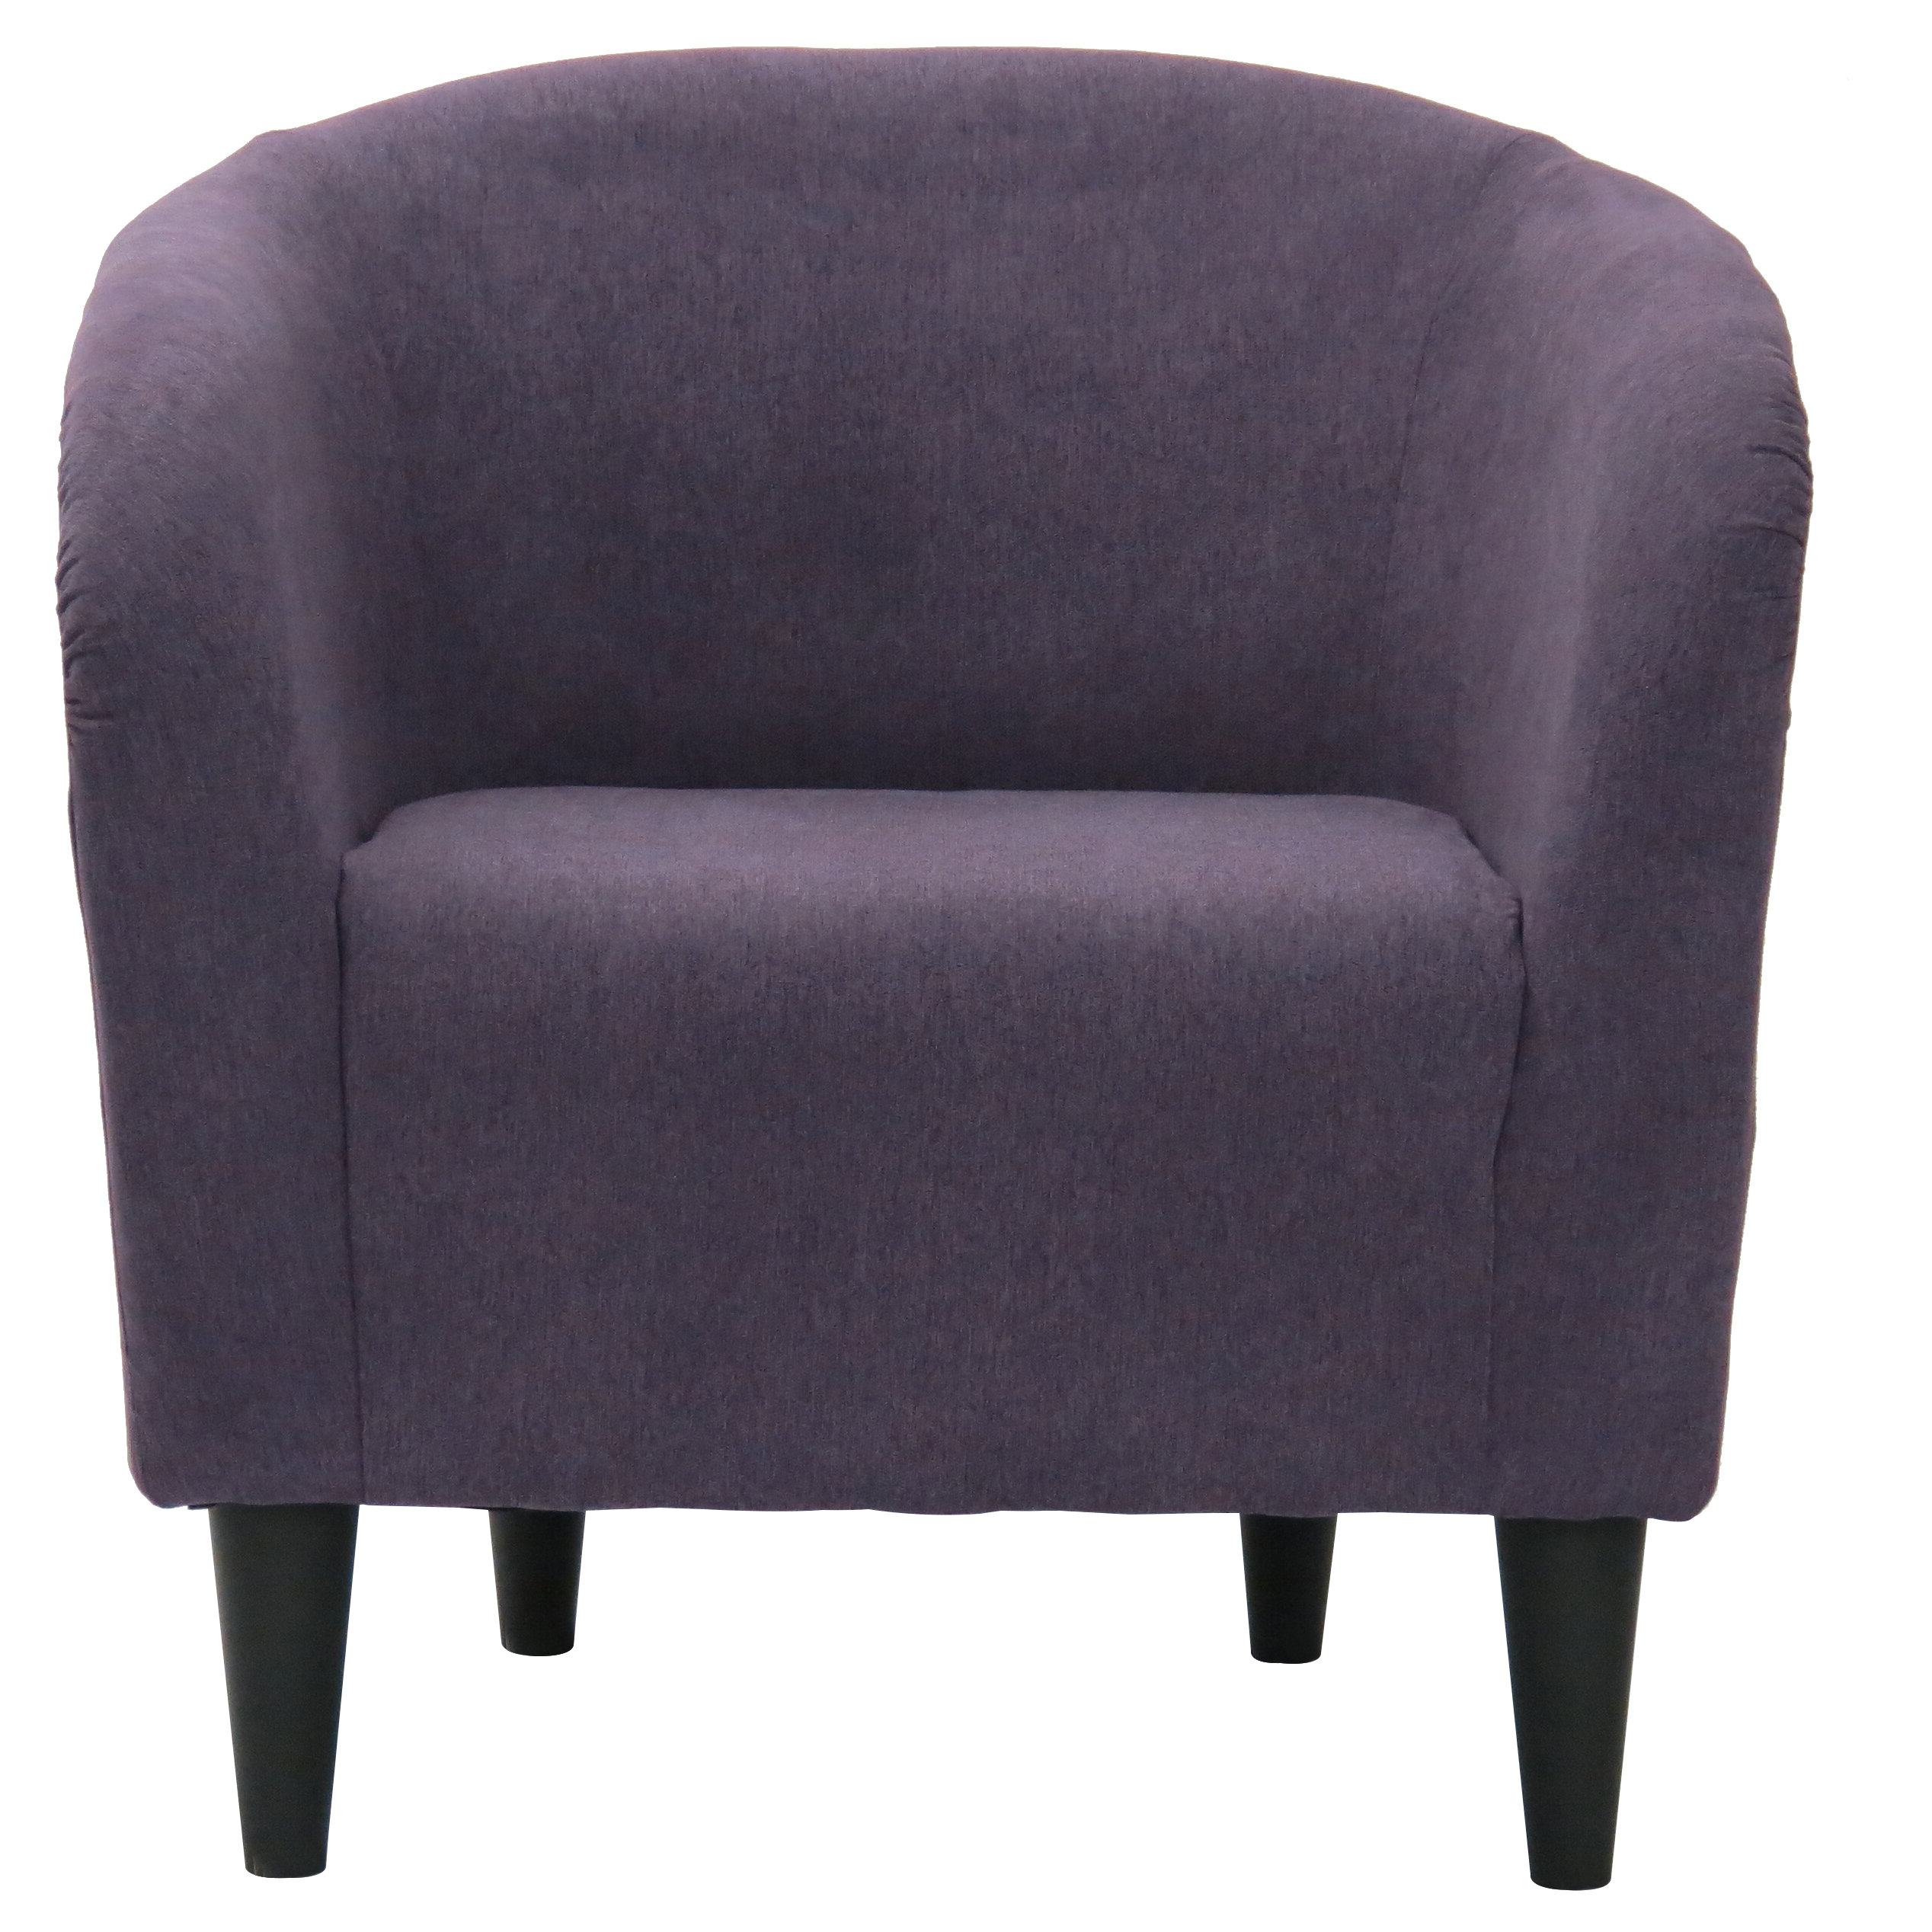 Widely Used Barnard Polyester Barrel Chairs Within Willa Arlo Interiors Hana Barrel Chair (View 16 of 20)